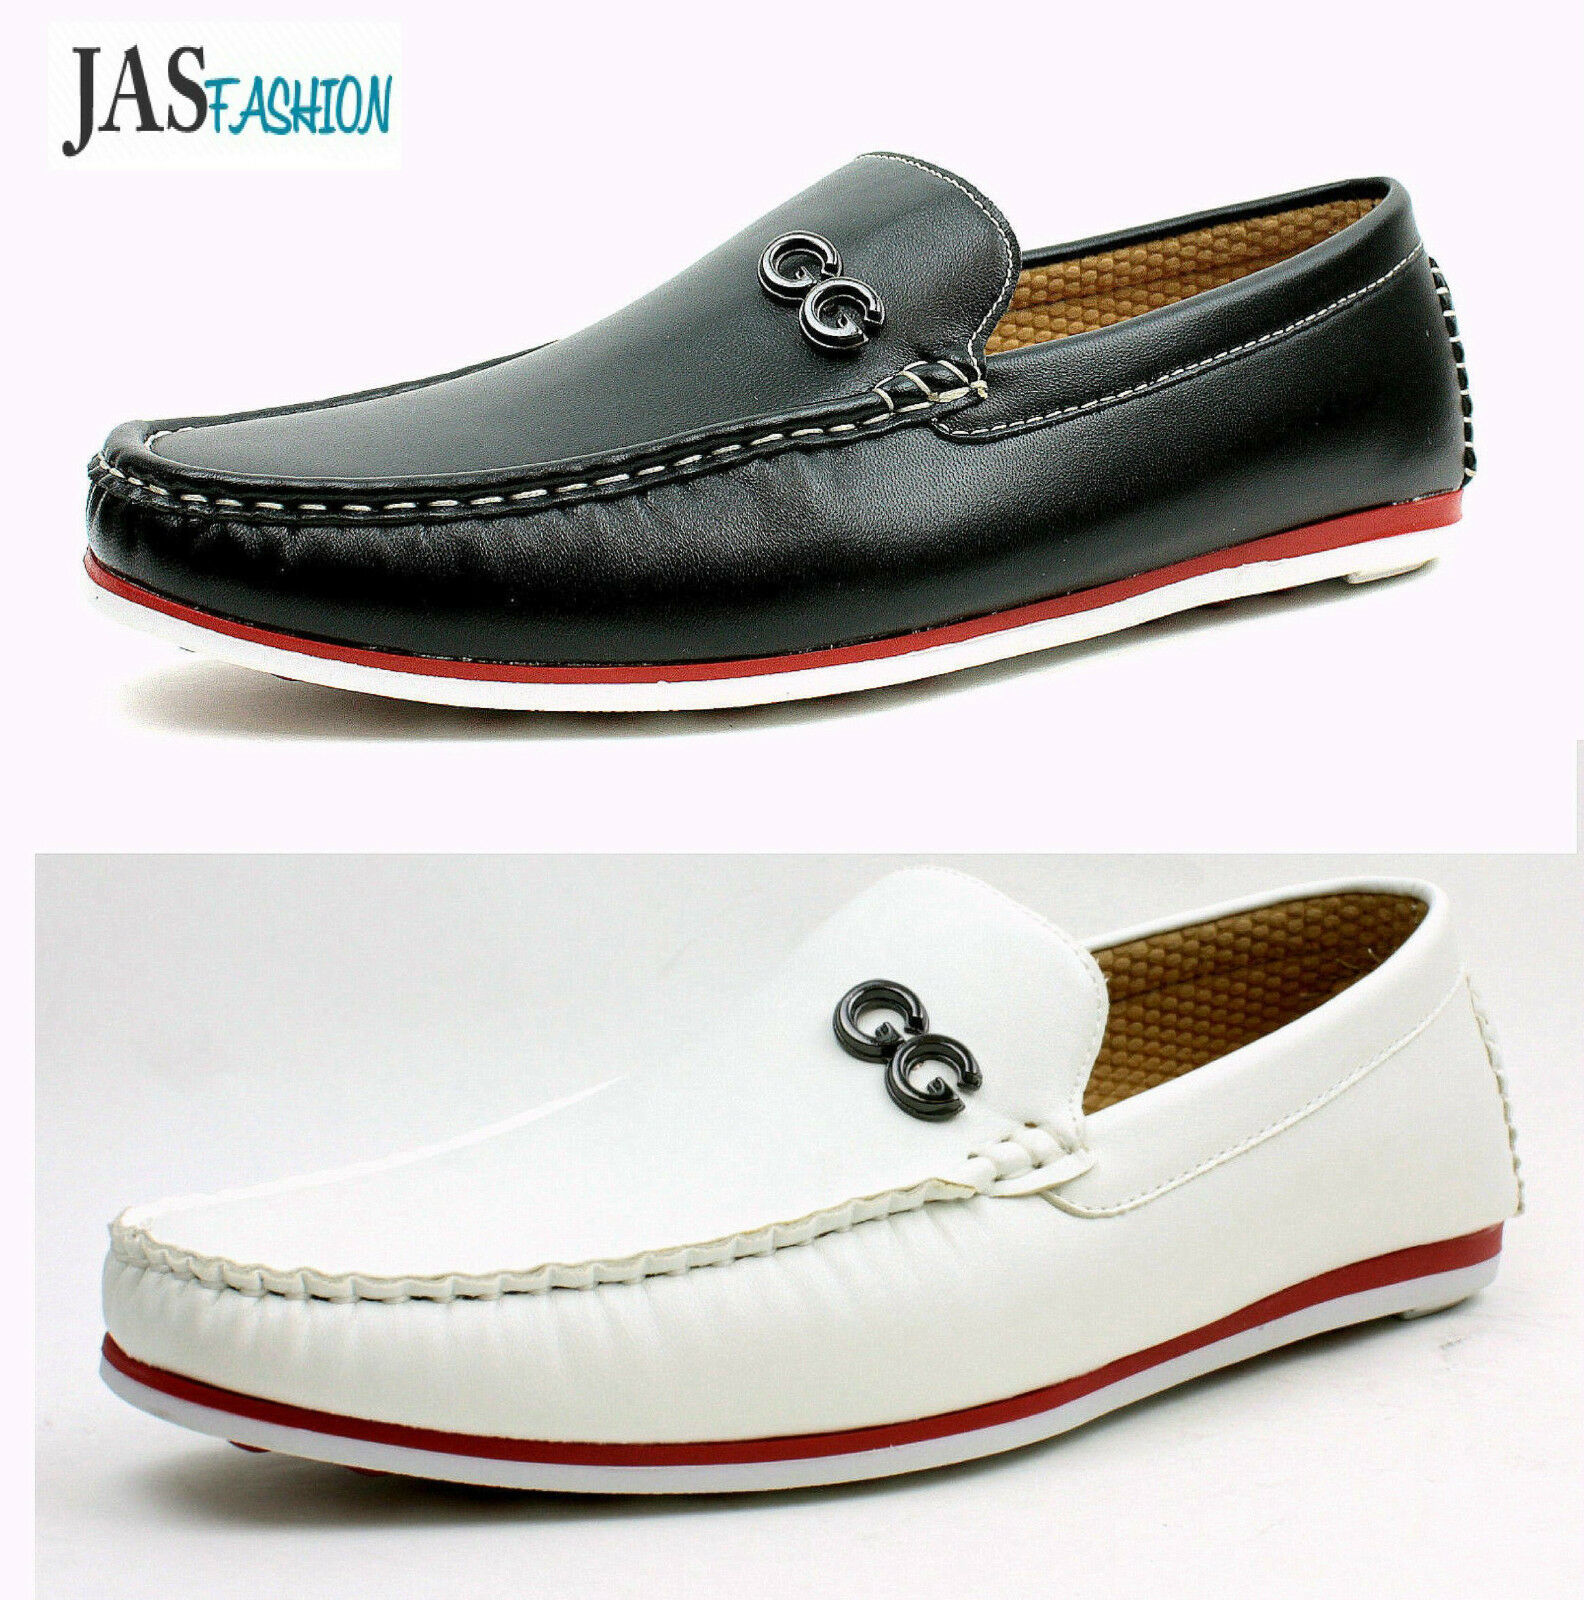 Mens Moccasin Type Boat Shoes